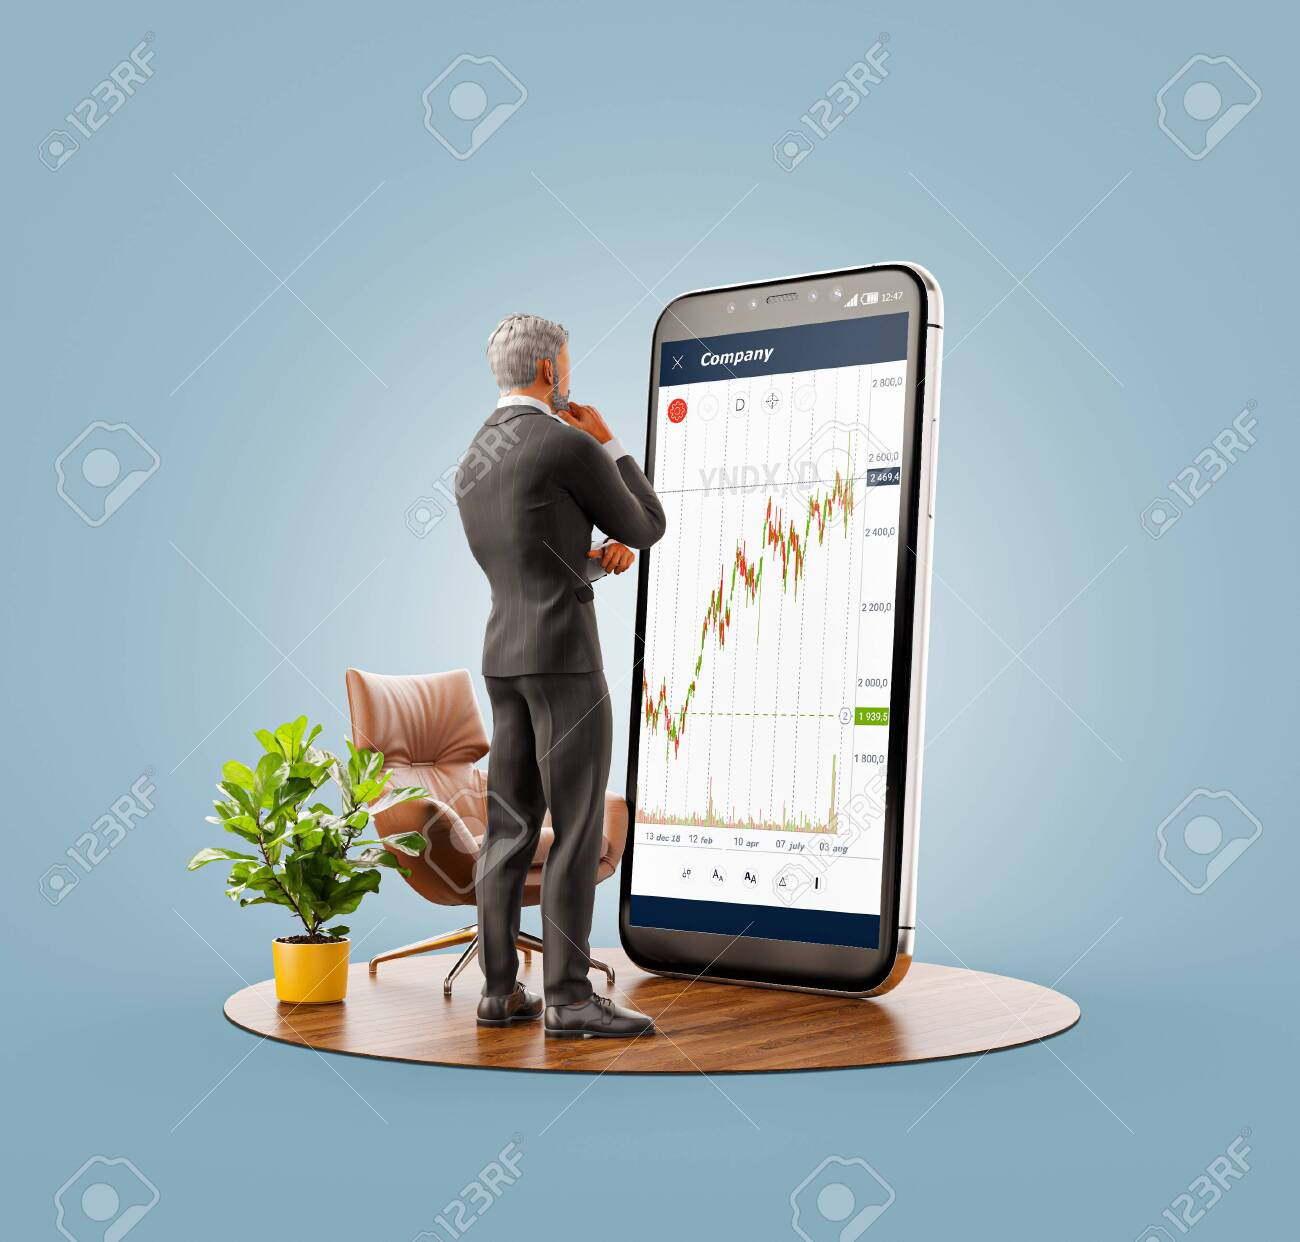 Unusual 3d illustration of a businessman standing in front of smartphone with Stock market graph. Finance and investment Smartphone apps concept. - 131380487